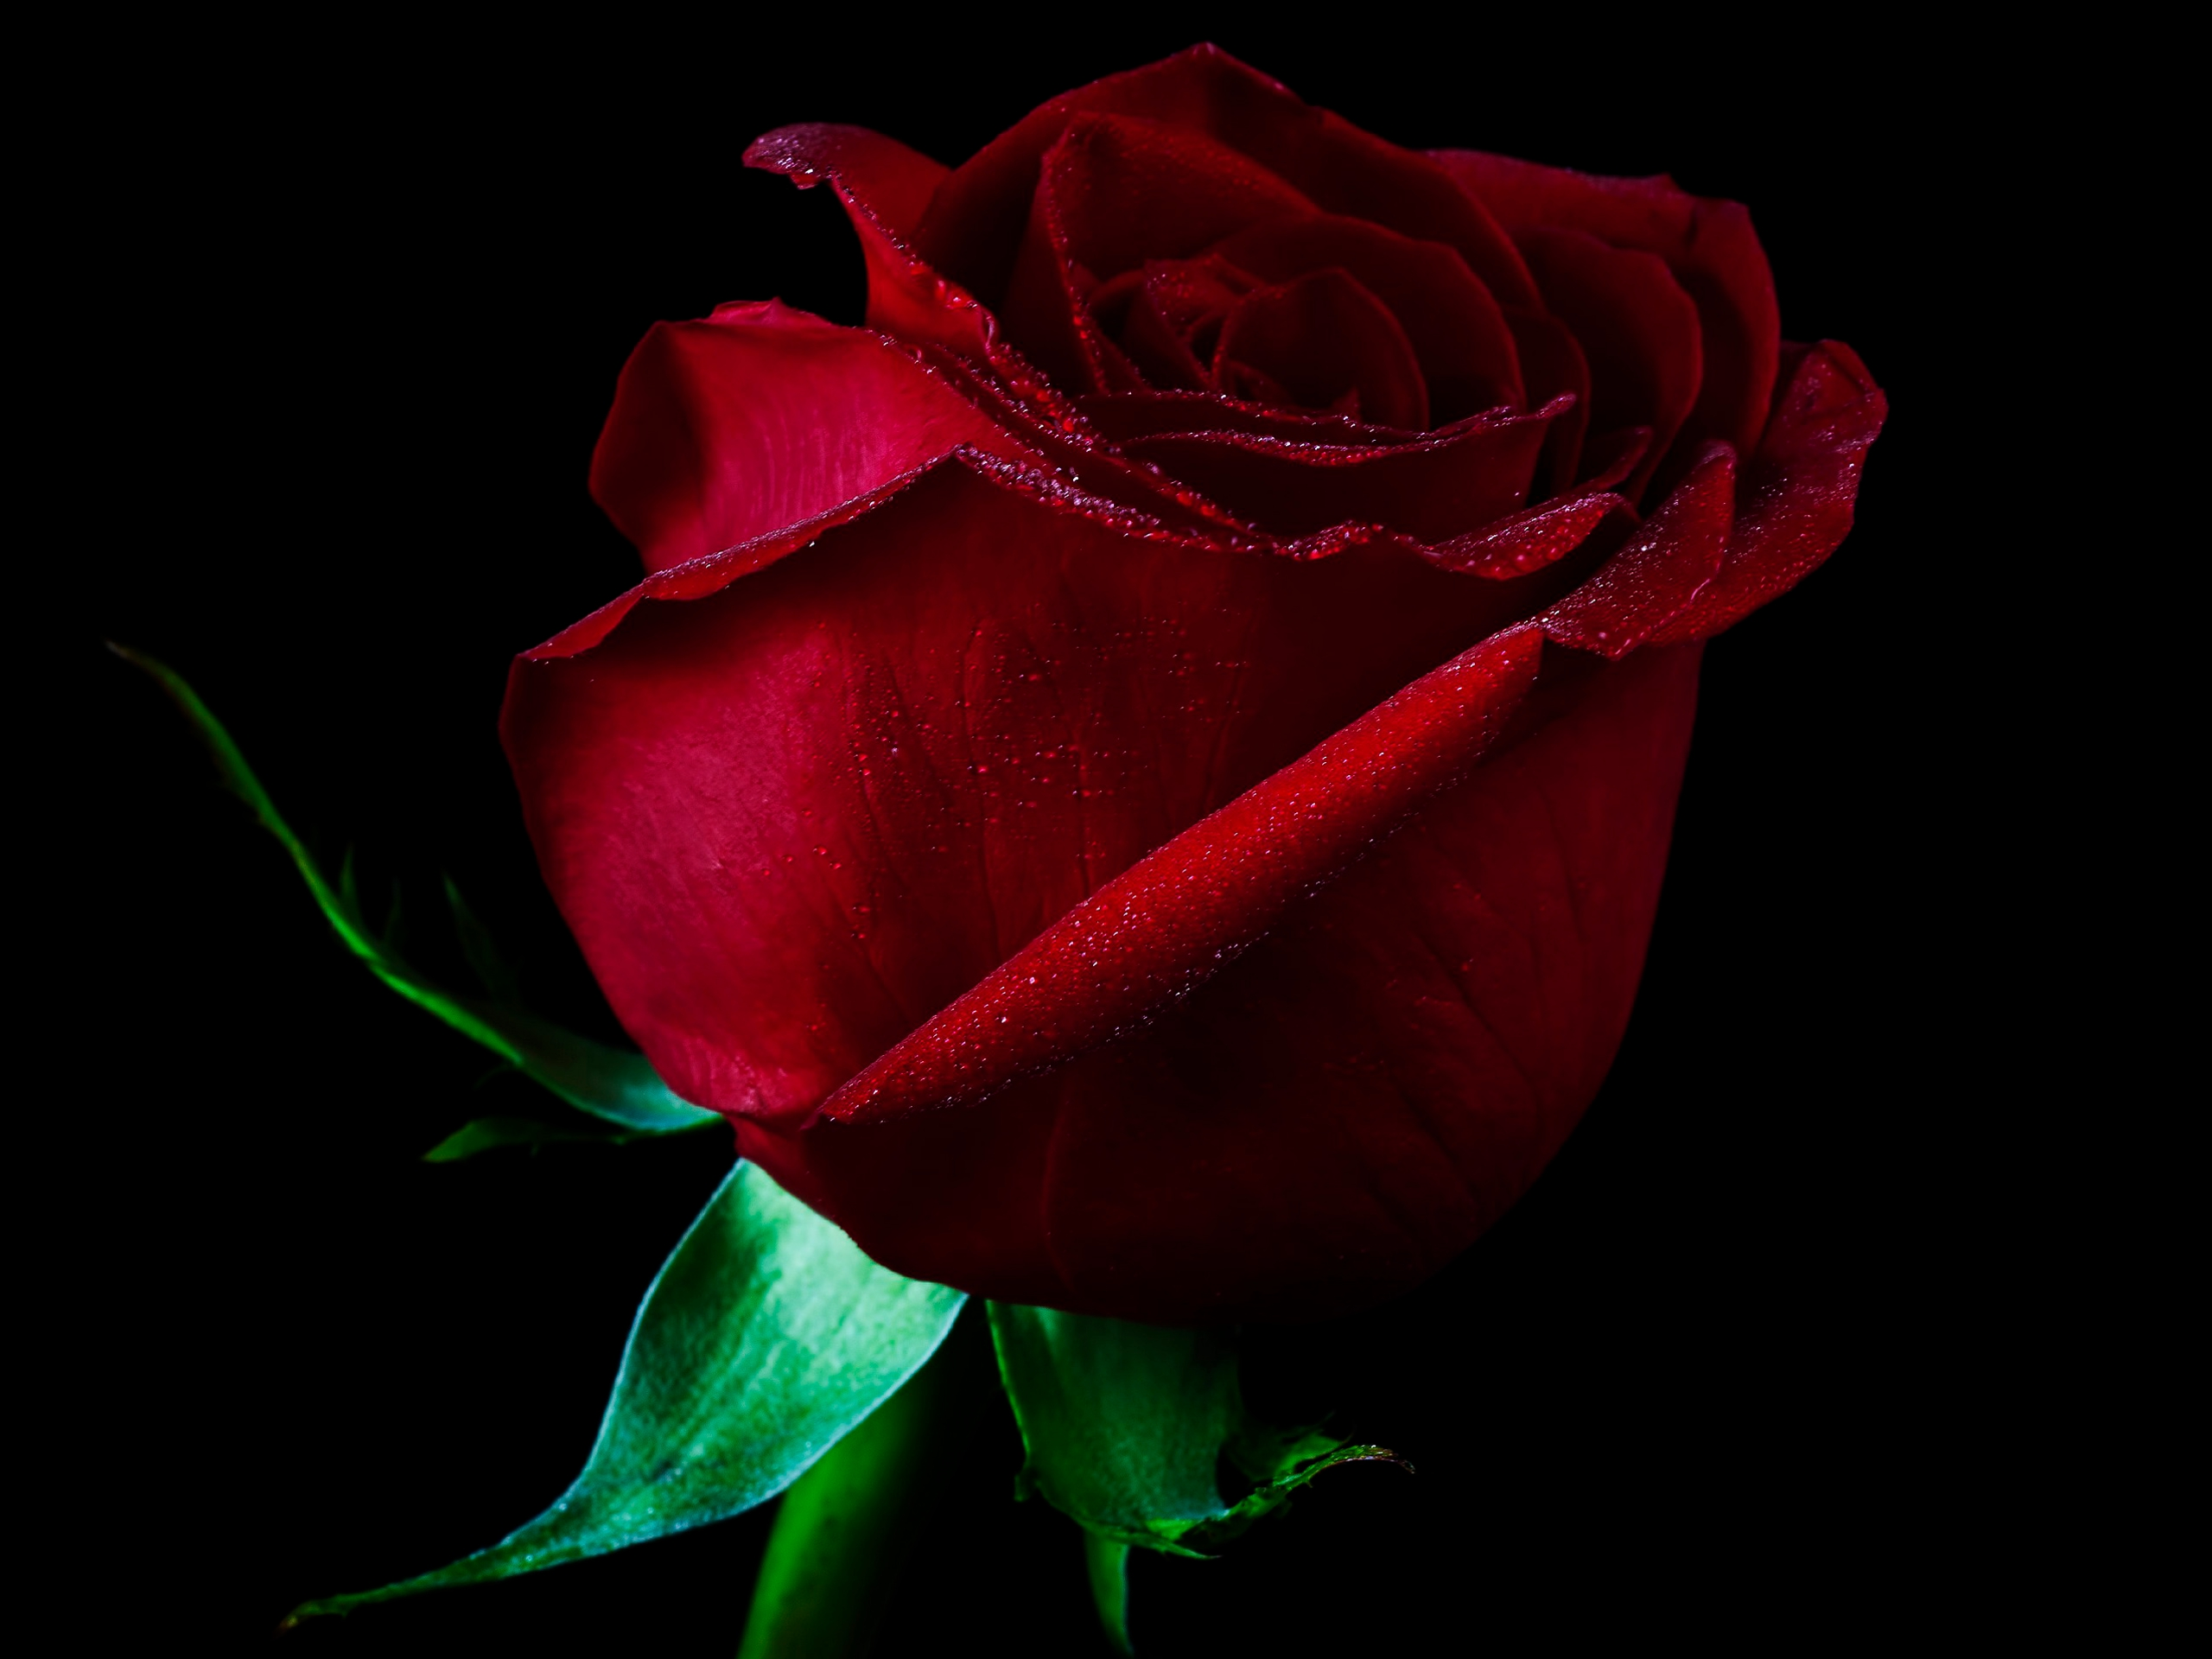 Single red rose full hd wallpaper and hintergrund - Red rose flower hd images ...